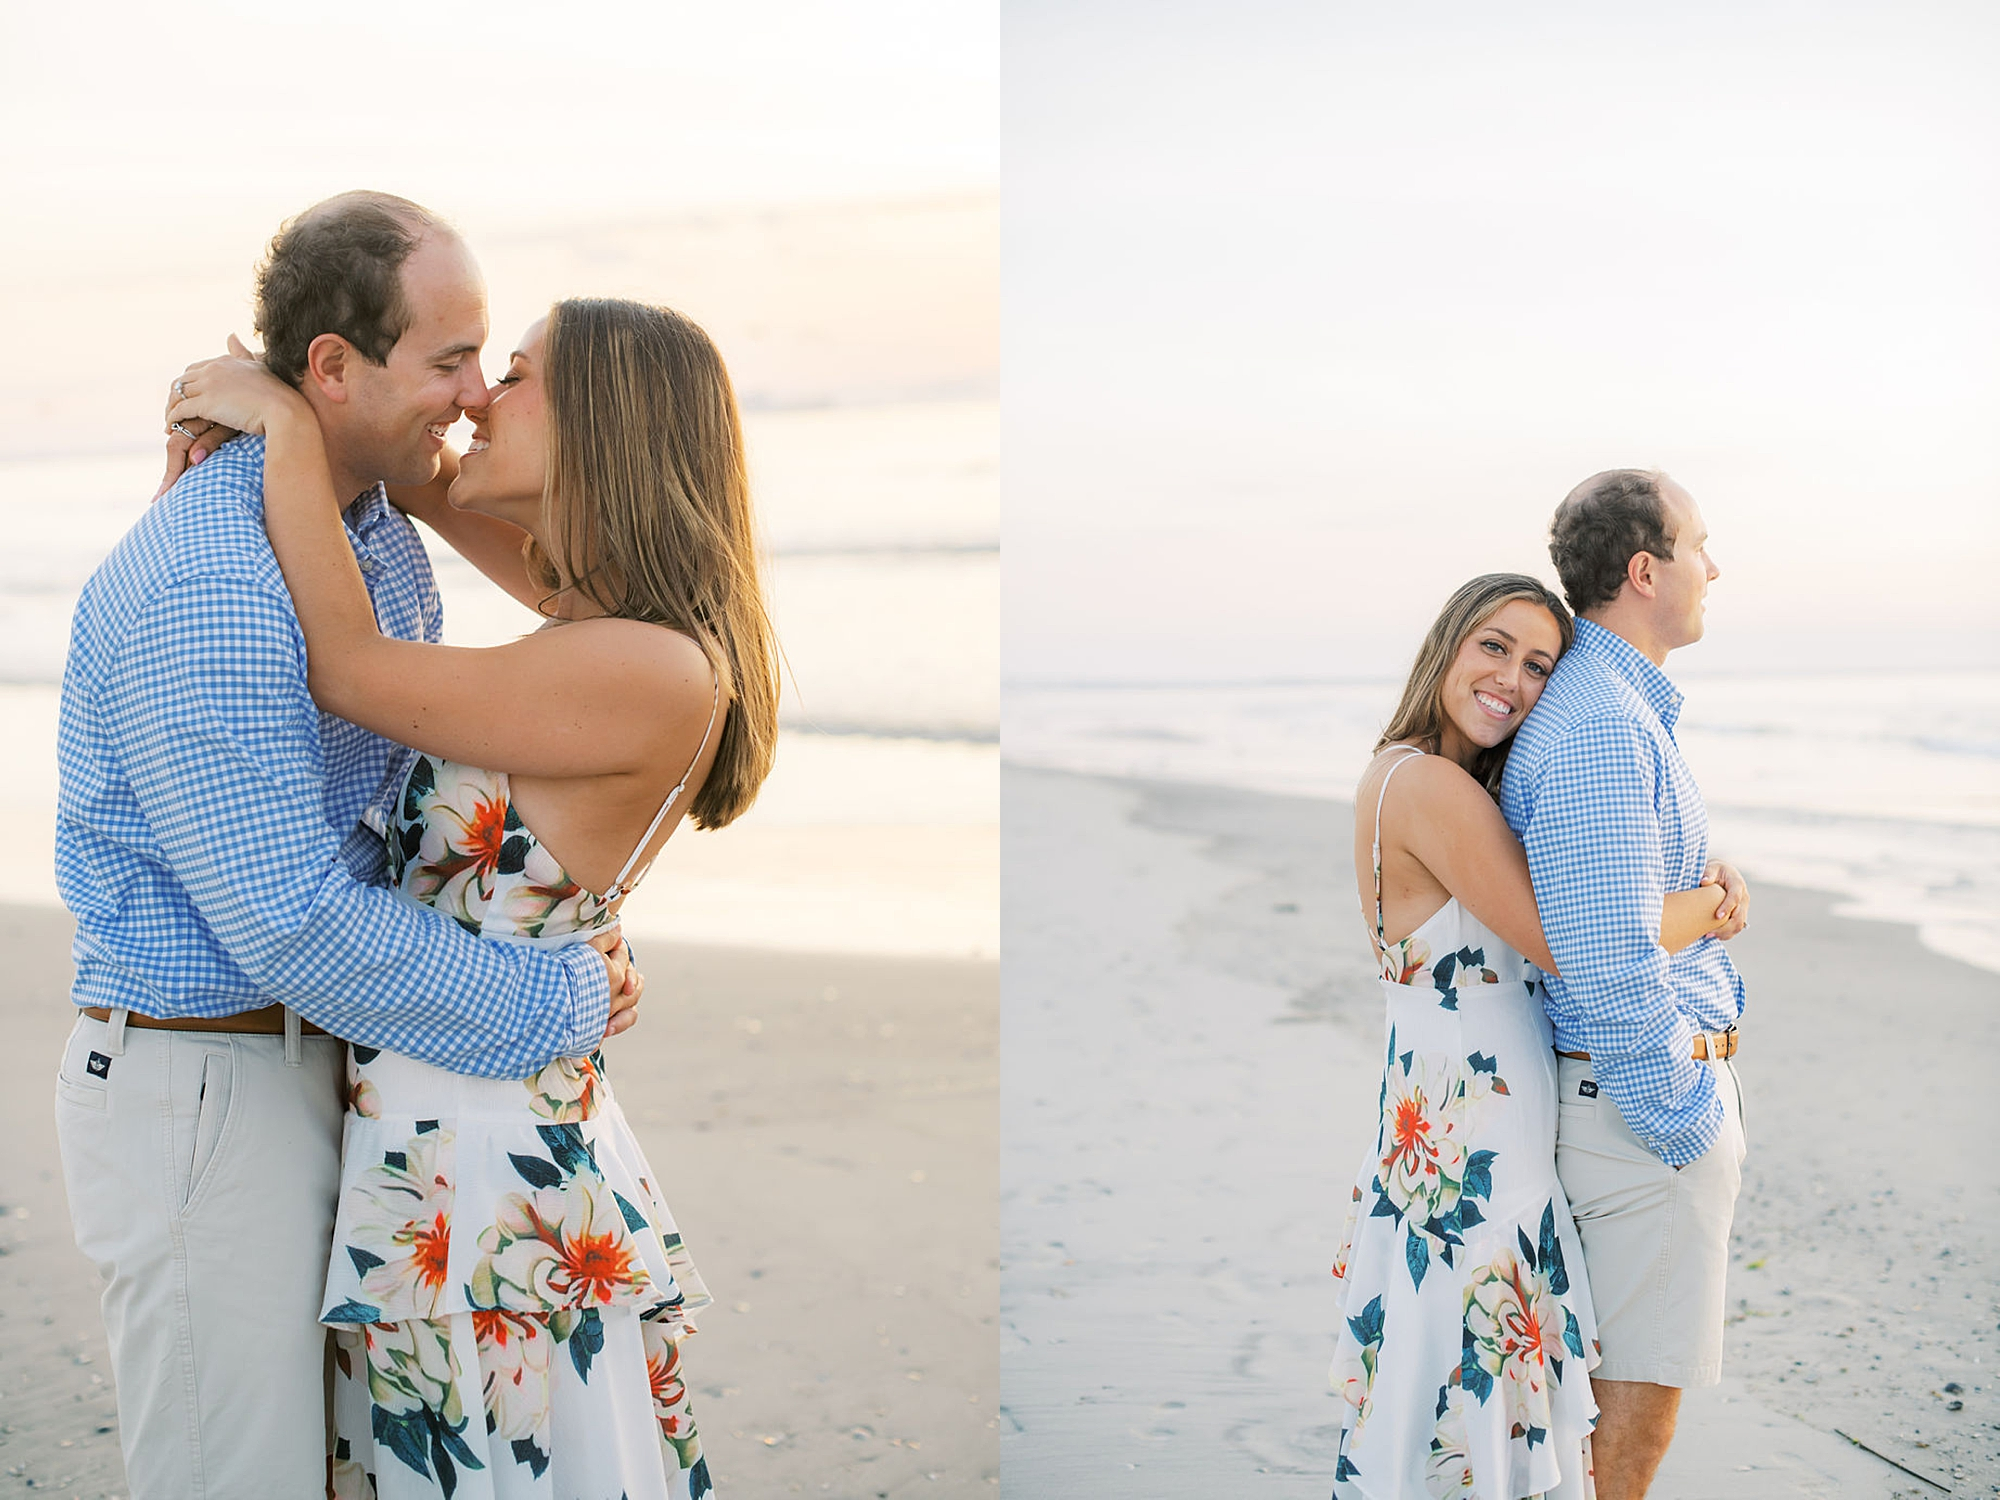 Organic and Romantic Engagement Photography in Ocean City NJ by Magdalena Studios 0008